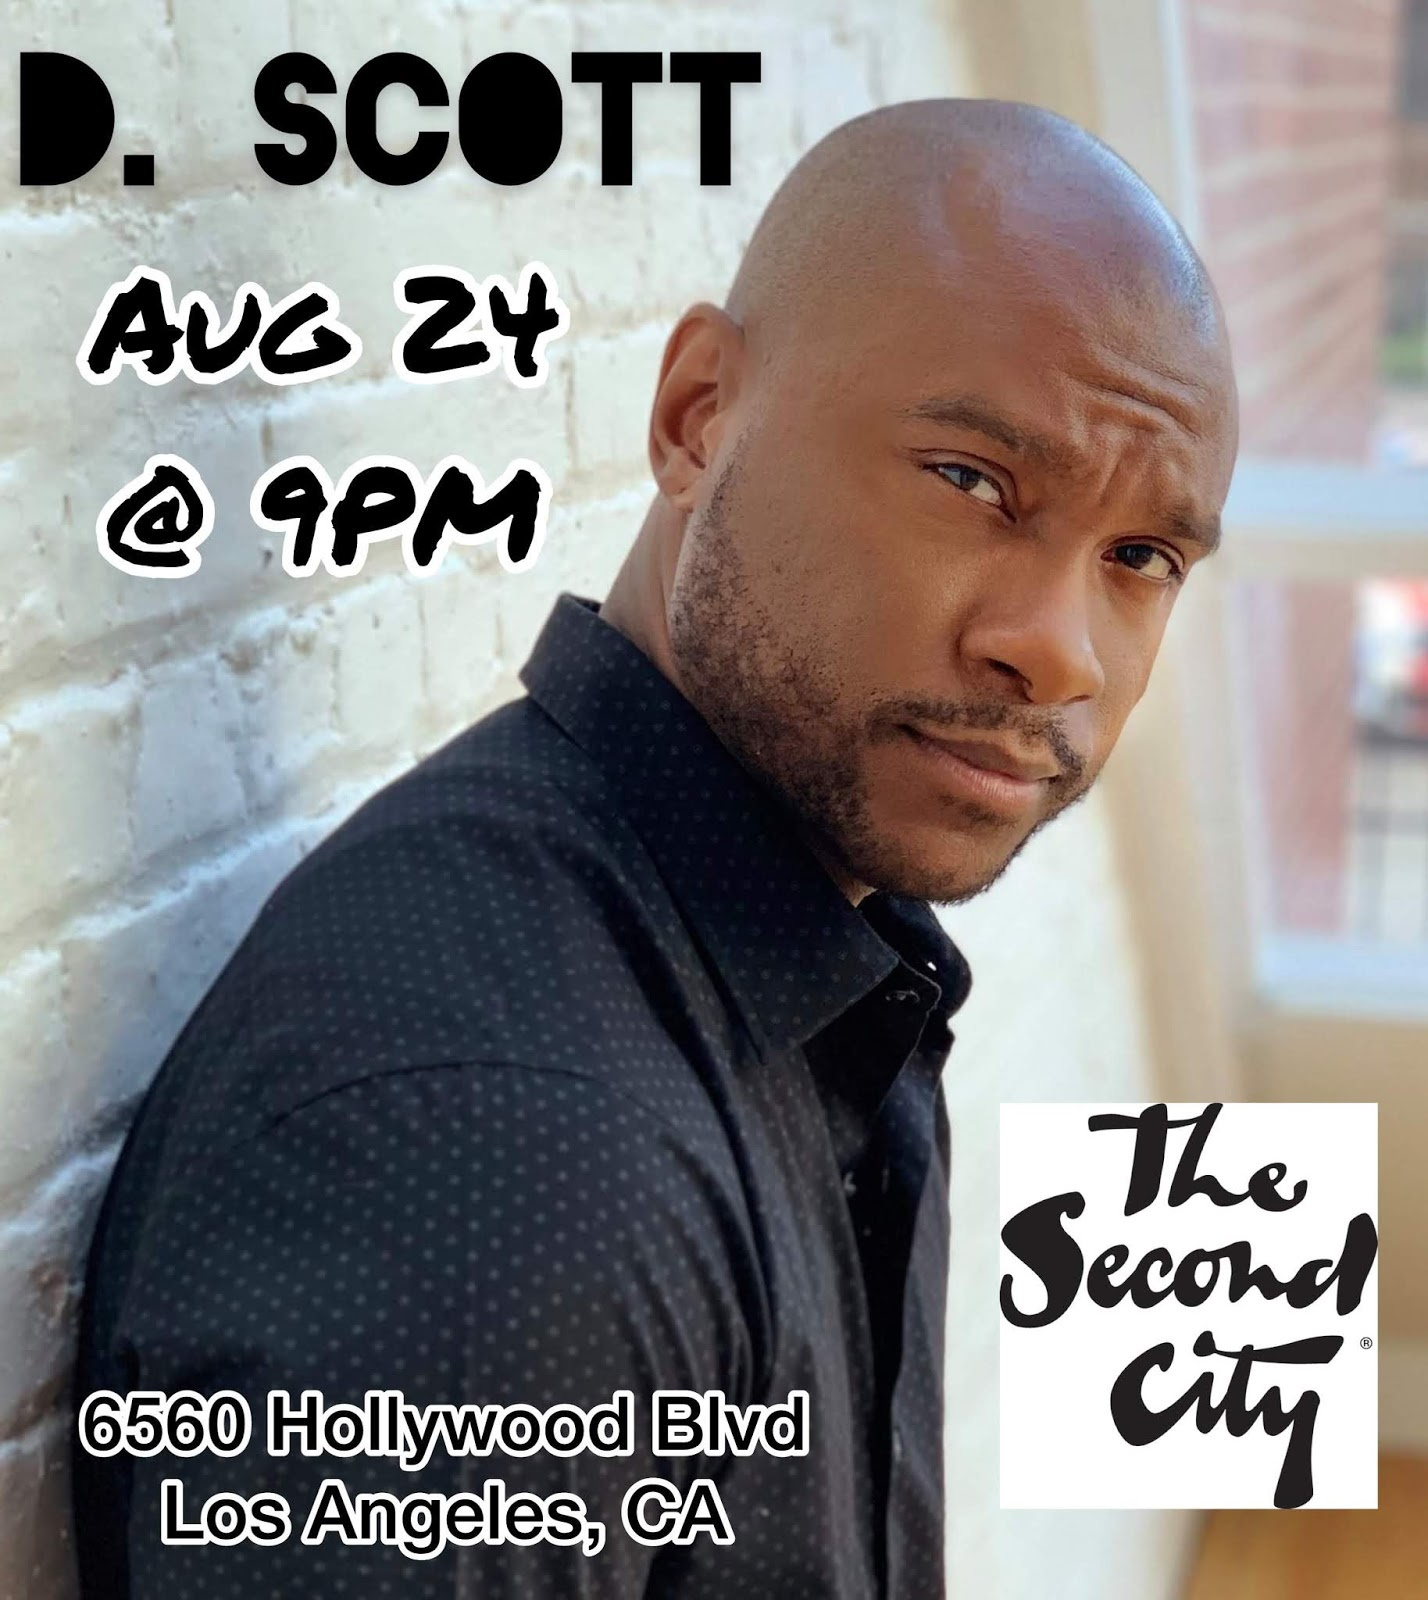 SHOW-TIME: Second City (Los Angeles, California) (8/24/19)